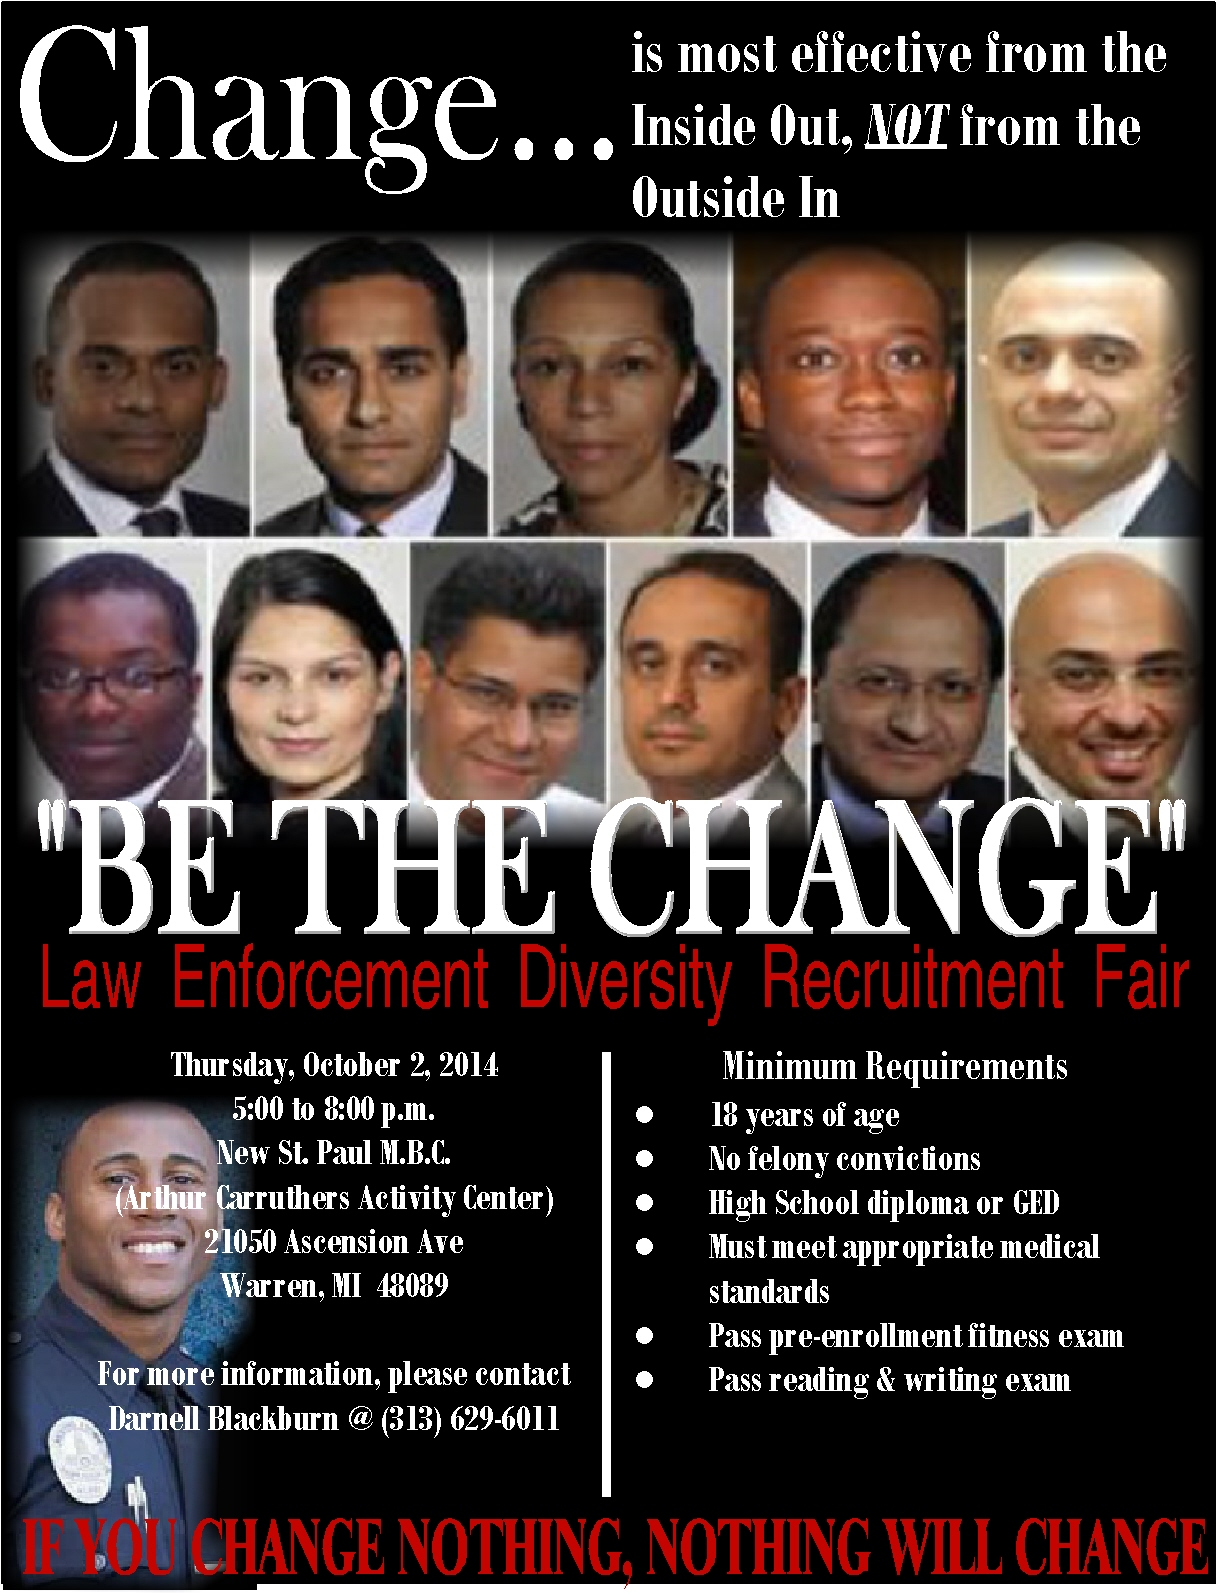 diversity-recruitment-fair-flyer.jpg